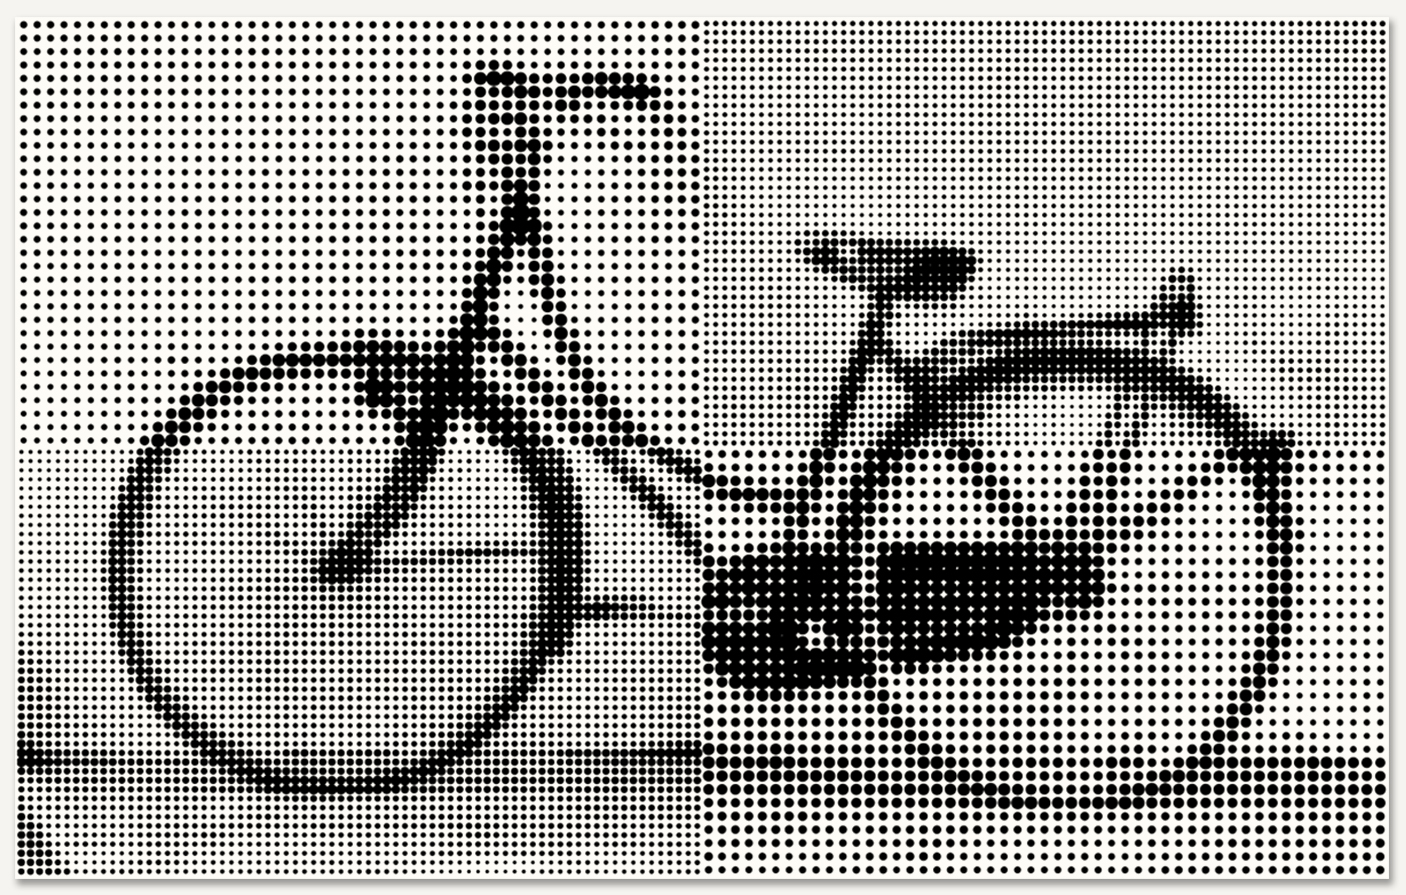 BICYCLE IV - LARGE.jpg